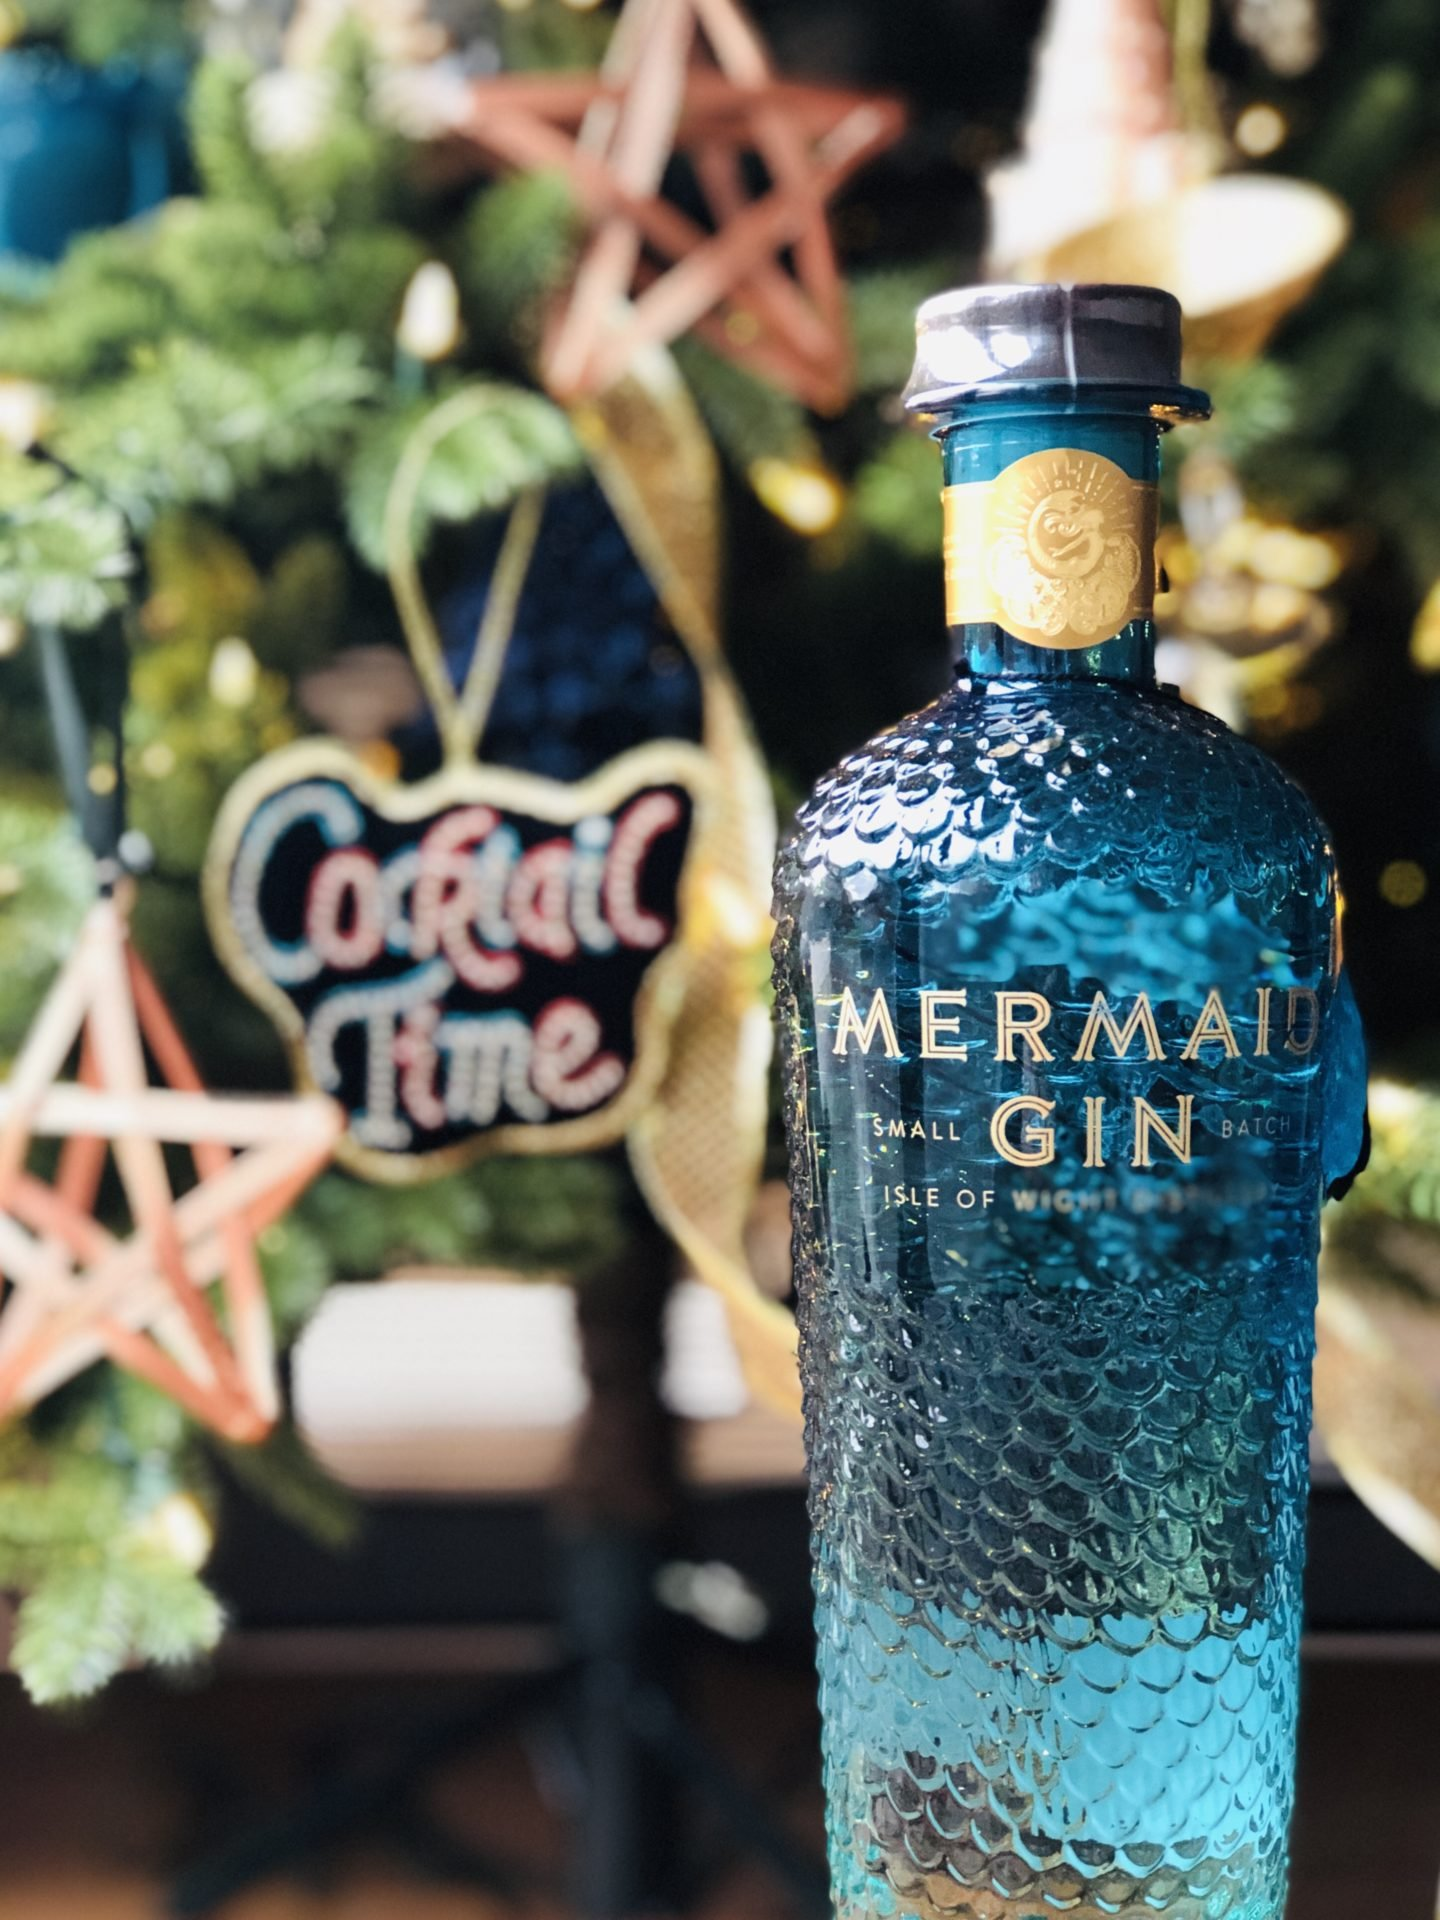 Hand Crafted Gin from the Isle of Wight mermaid gin